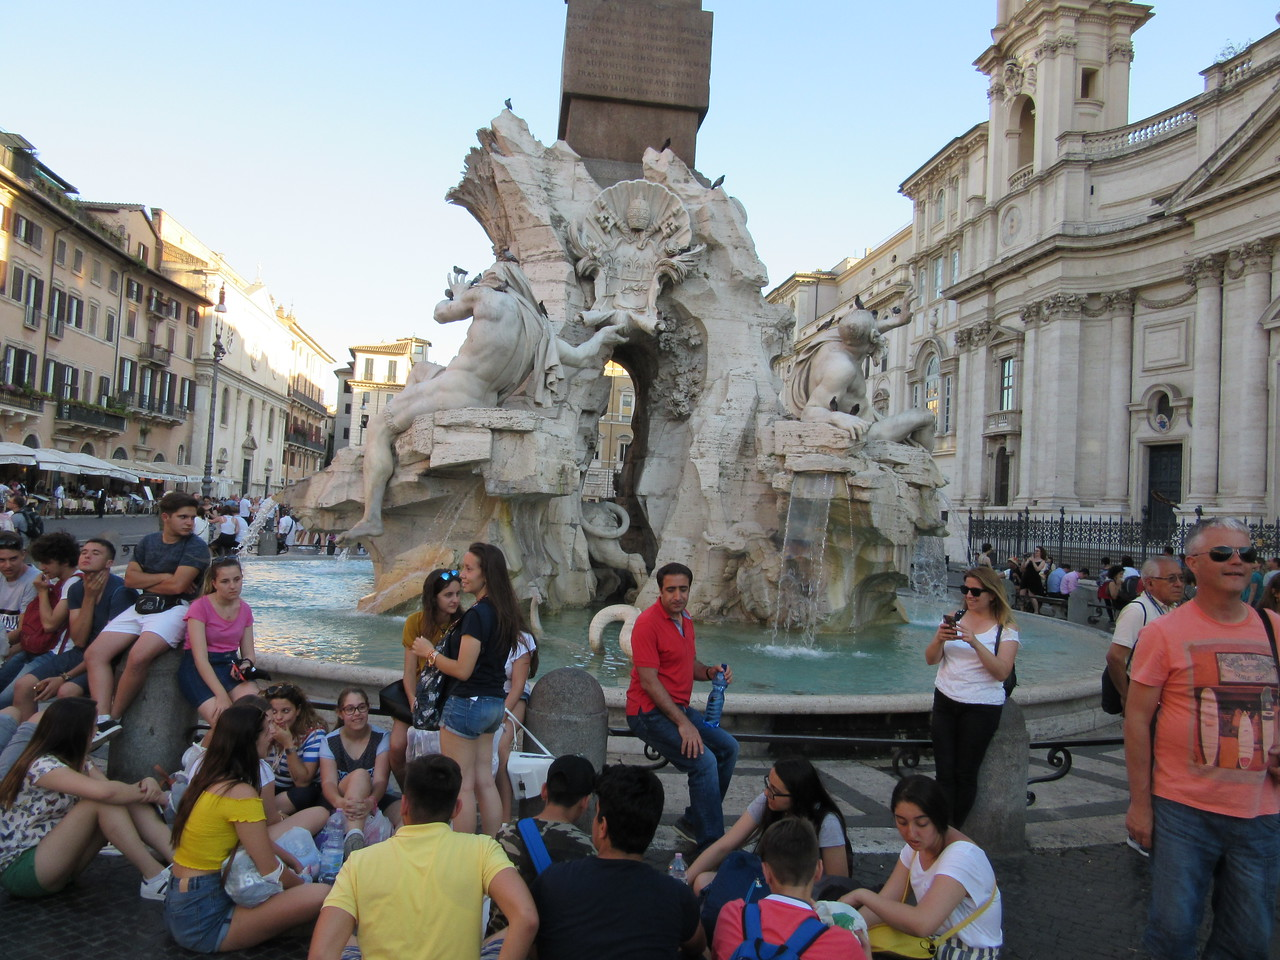 Fountain of the Four Rivers ( Four River Gods of Piazza Navona).   The four rivers are: The Ganges, The Nile, The Danube and The Rio della Plata.